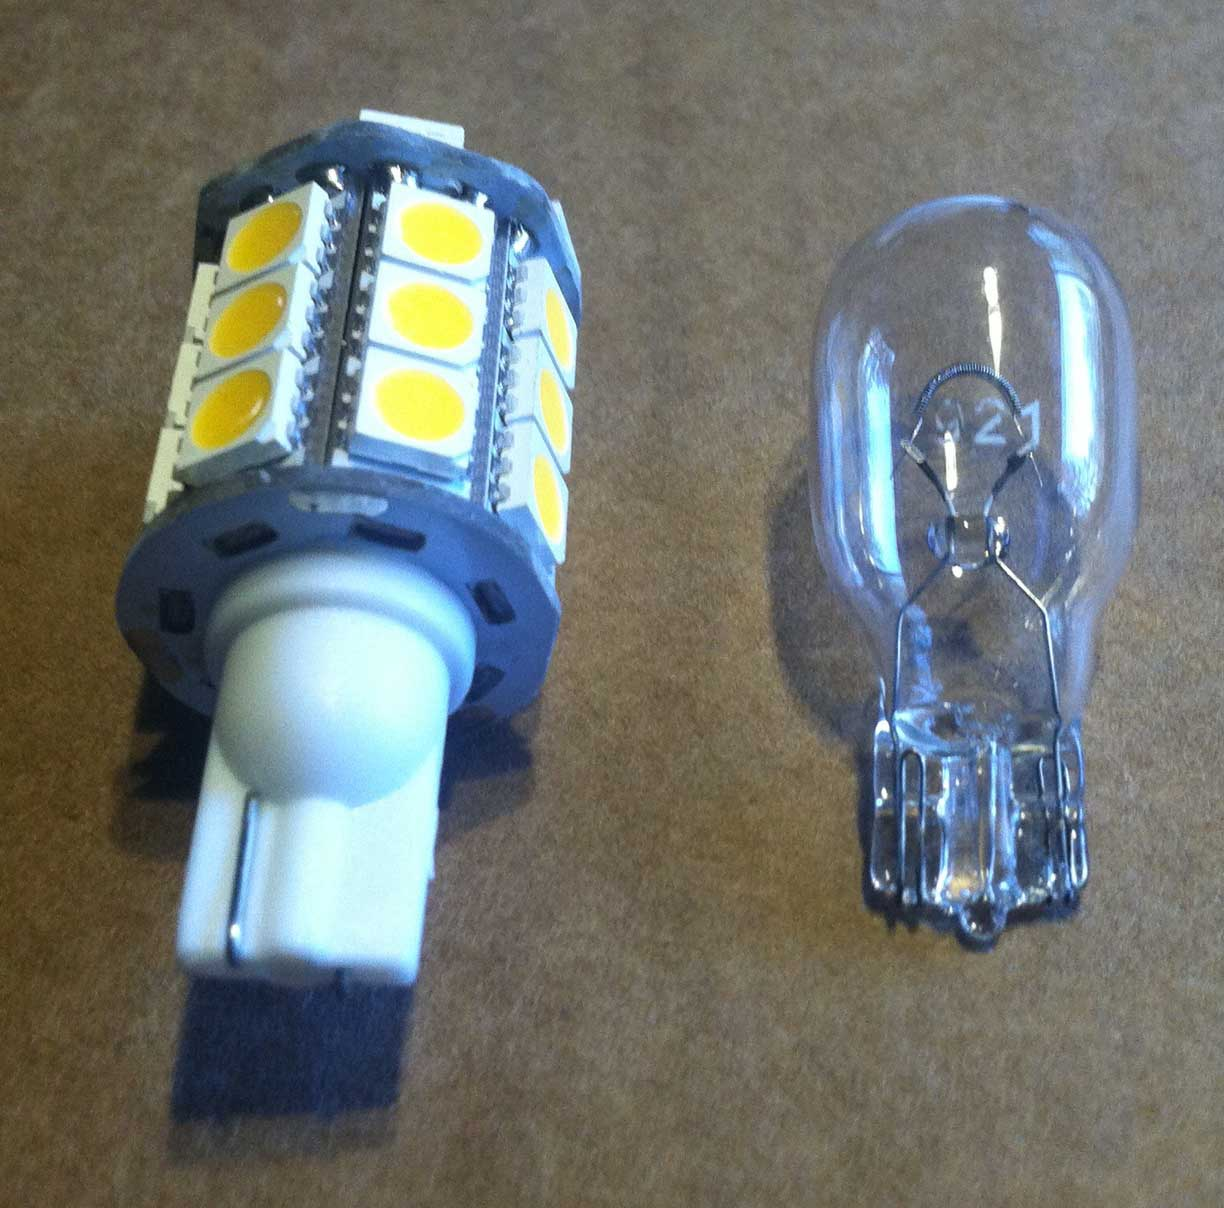 921 LED on left, standard 921 on right.